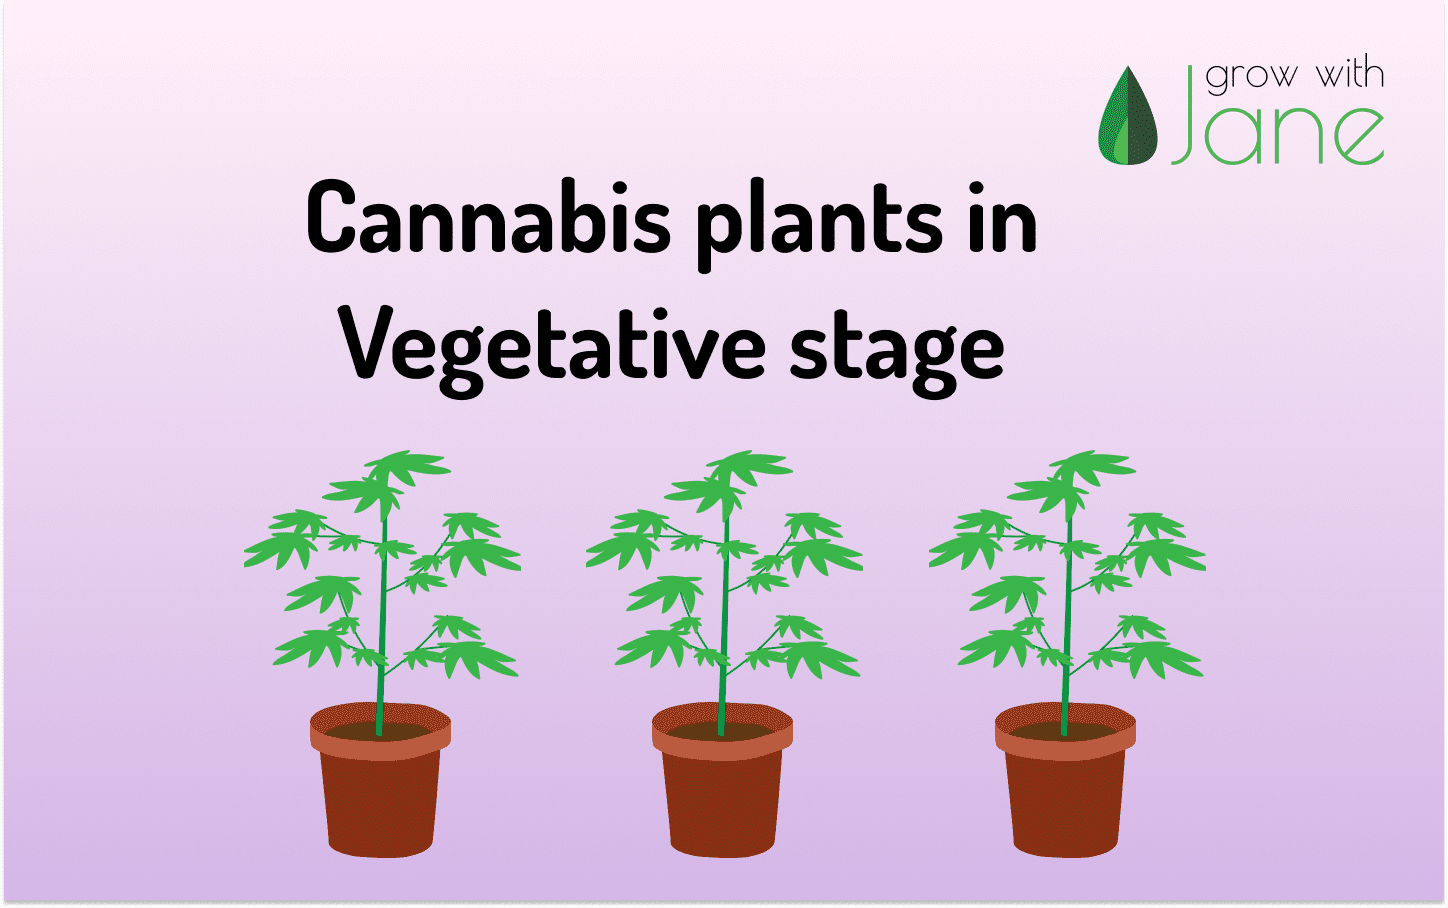 Cannabis plant in vegetative stage